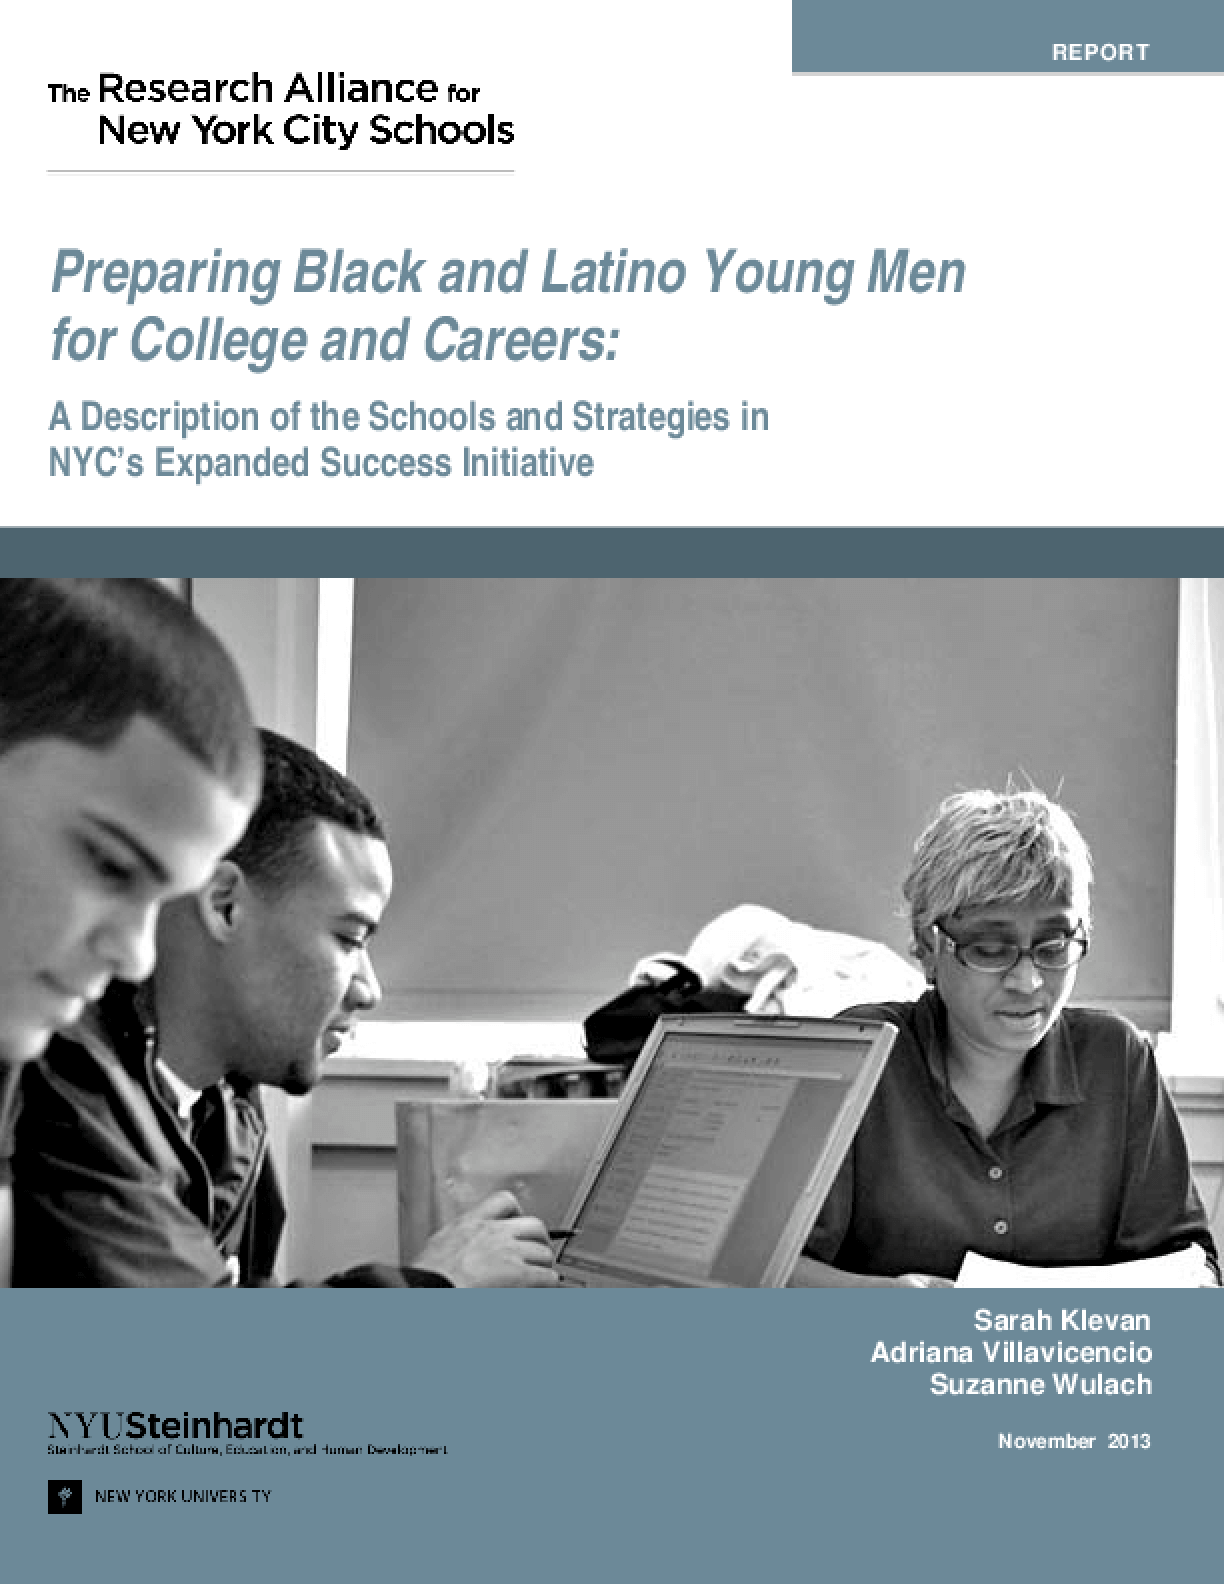 Preparing Black and Latino Young Men for College and Careers: A Description of the Schools and Strategies in NYC's Expanded Success Initiative